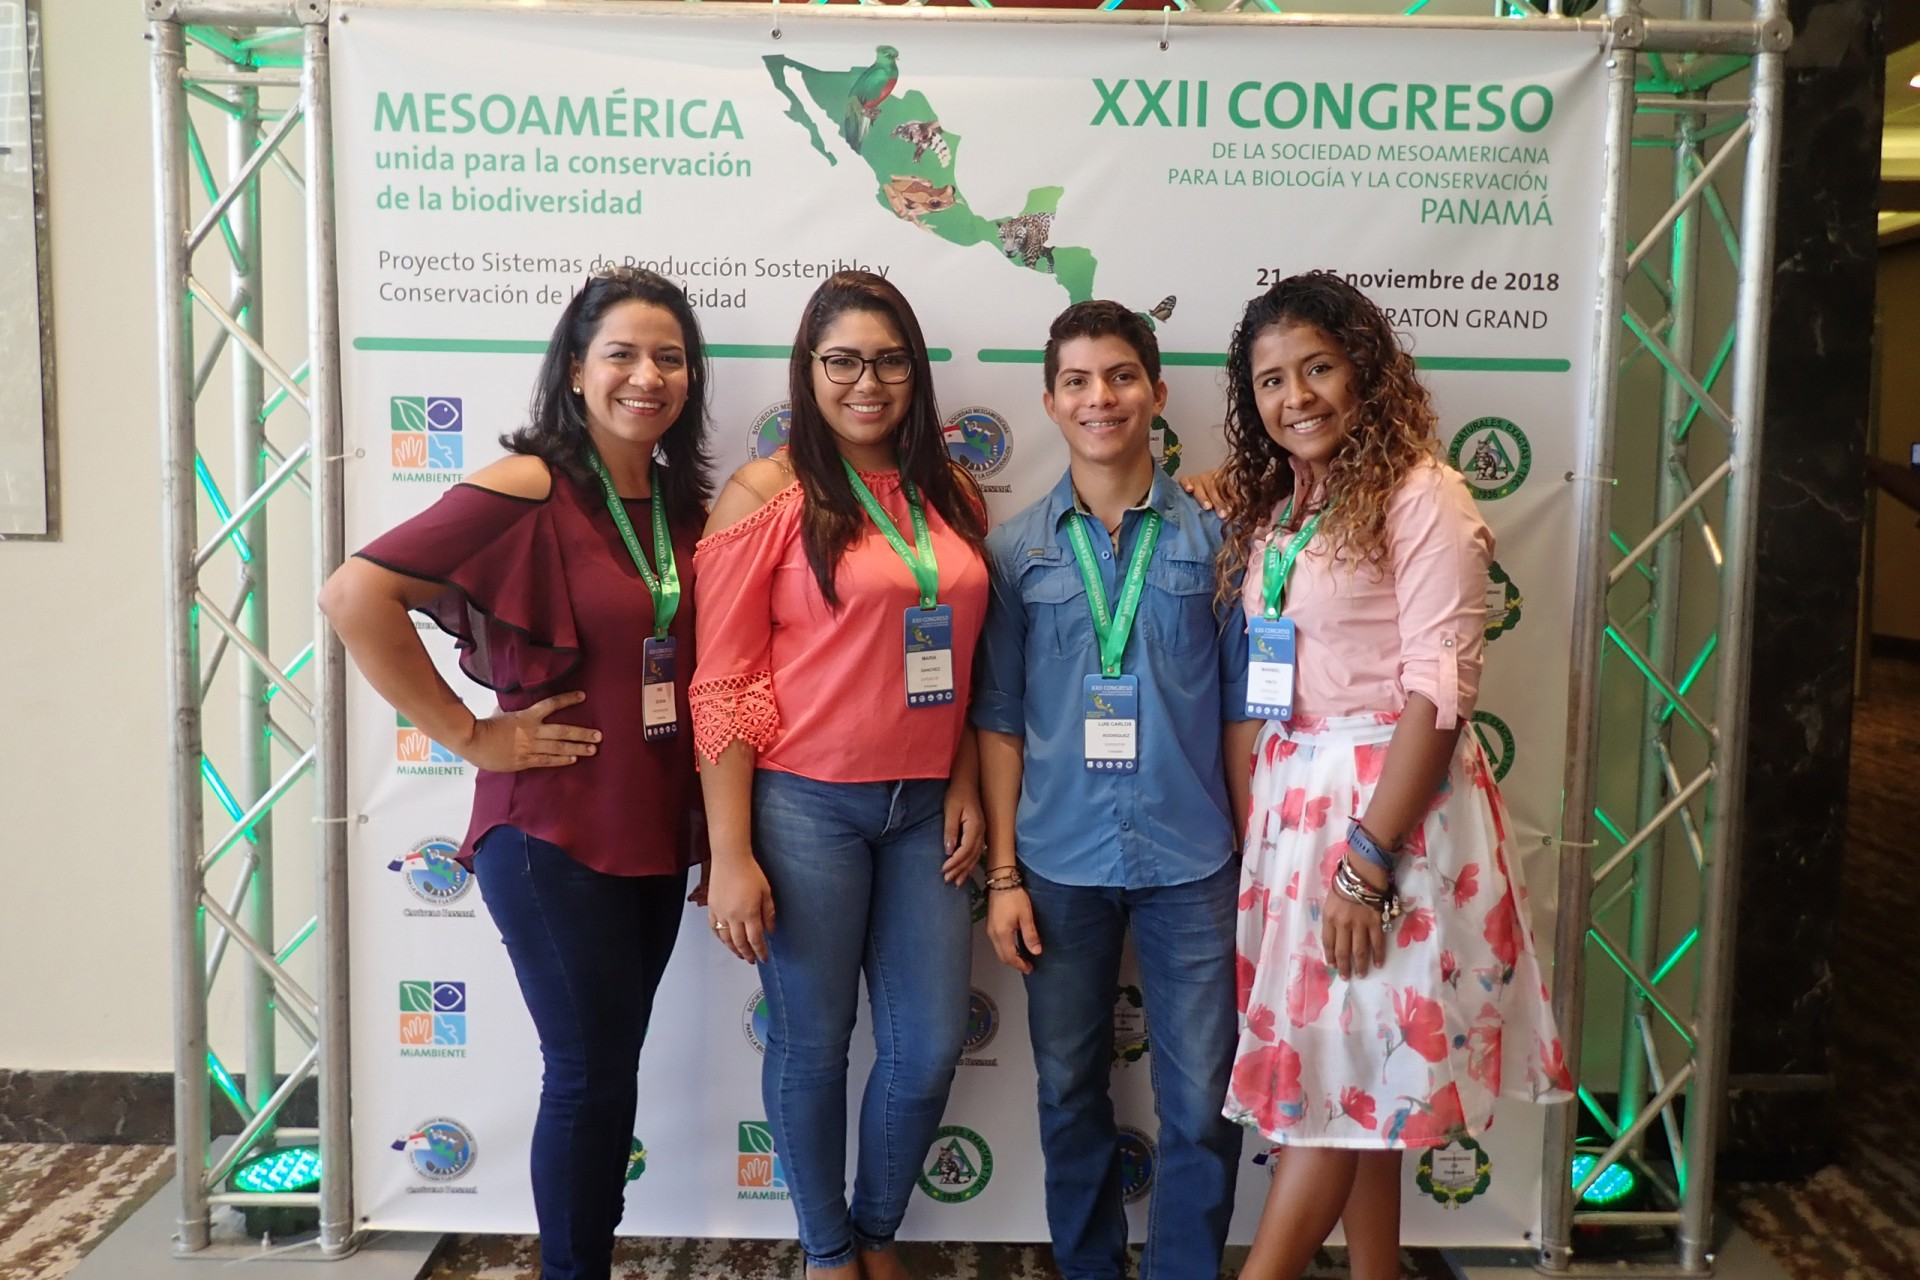 XXII Congress of the Mesoamerican  Society for Biology and Conservation